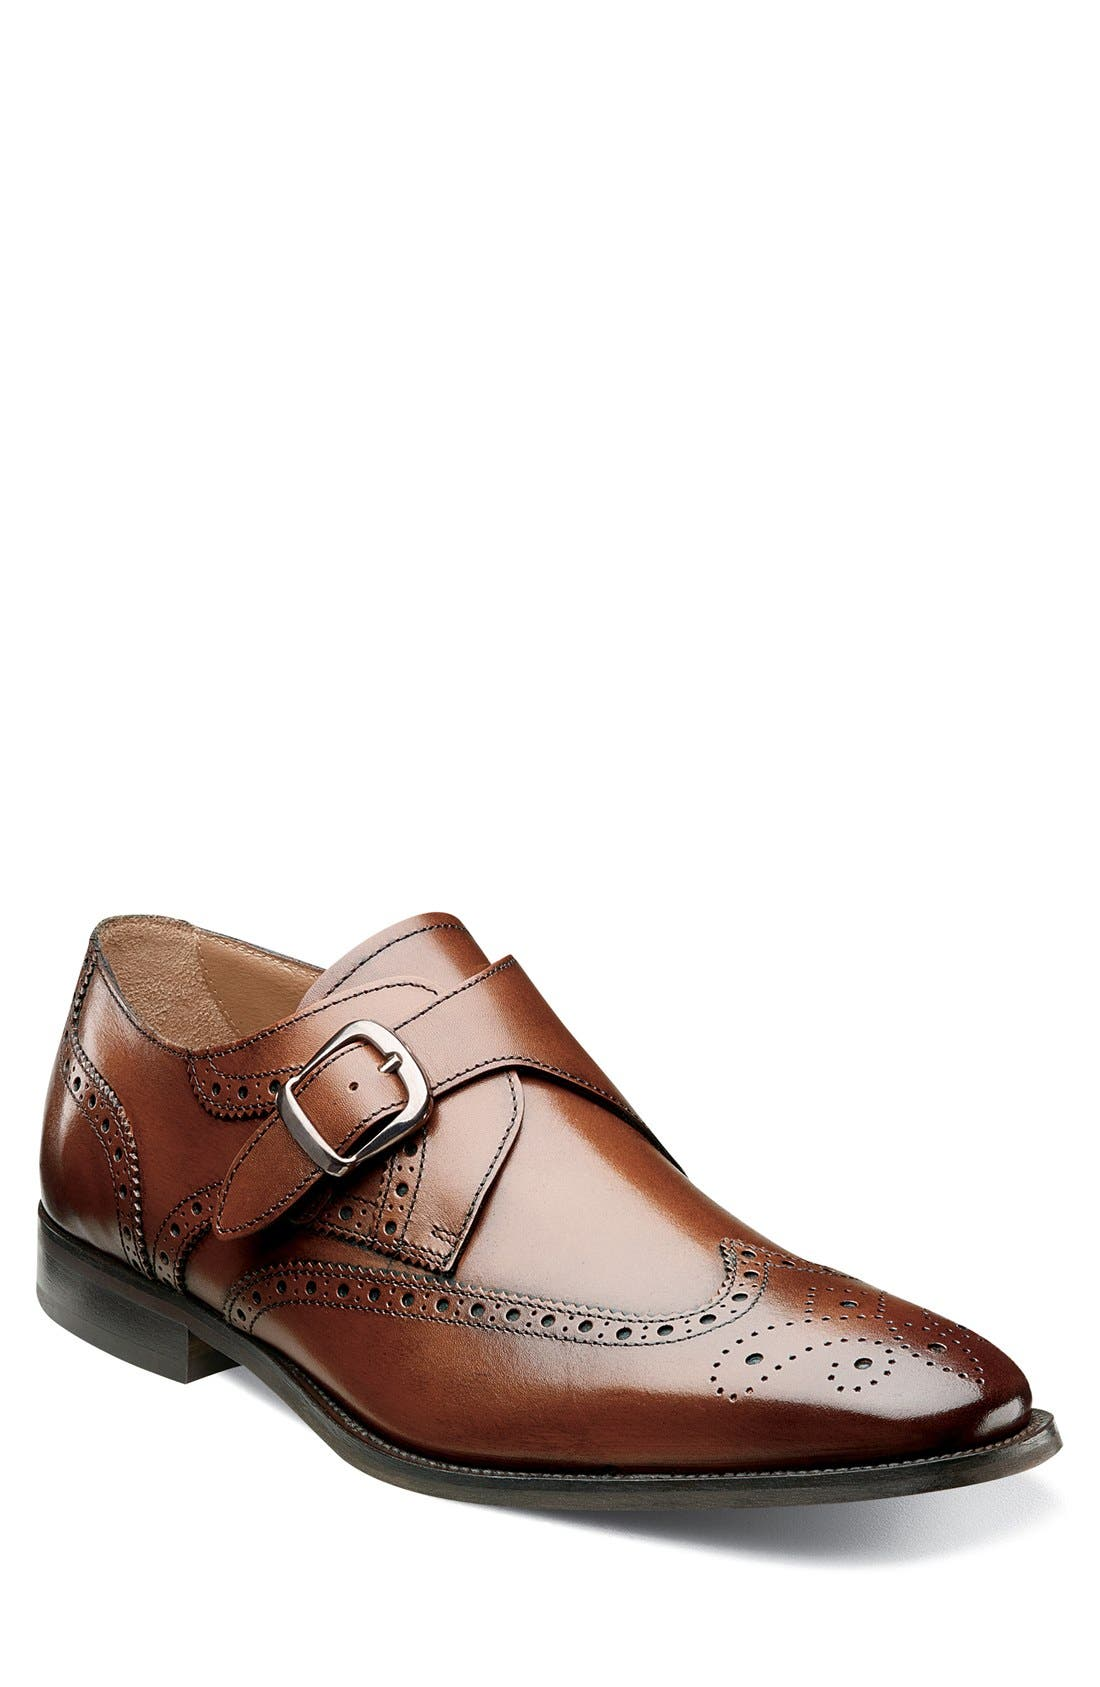 Alternate Image 1 Selected - Florsheim 'Sabato' Wingtip Monk Strap Shoe (Men)